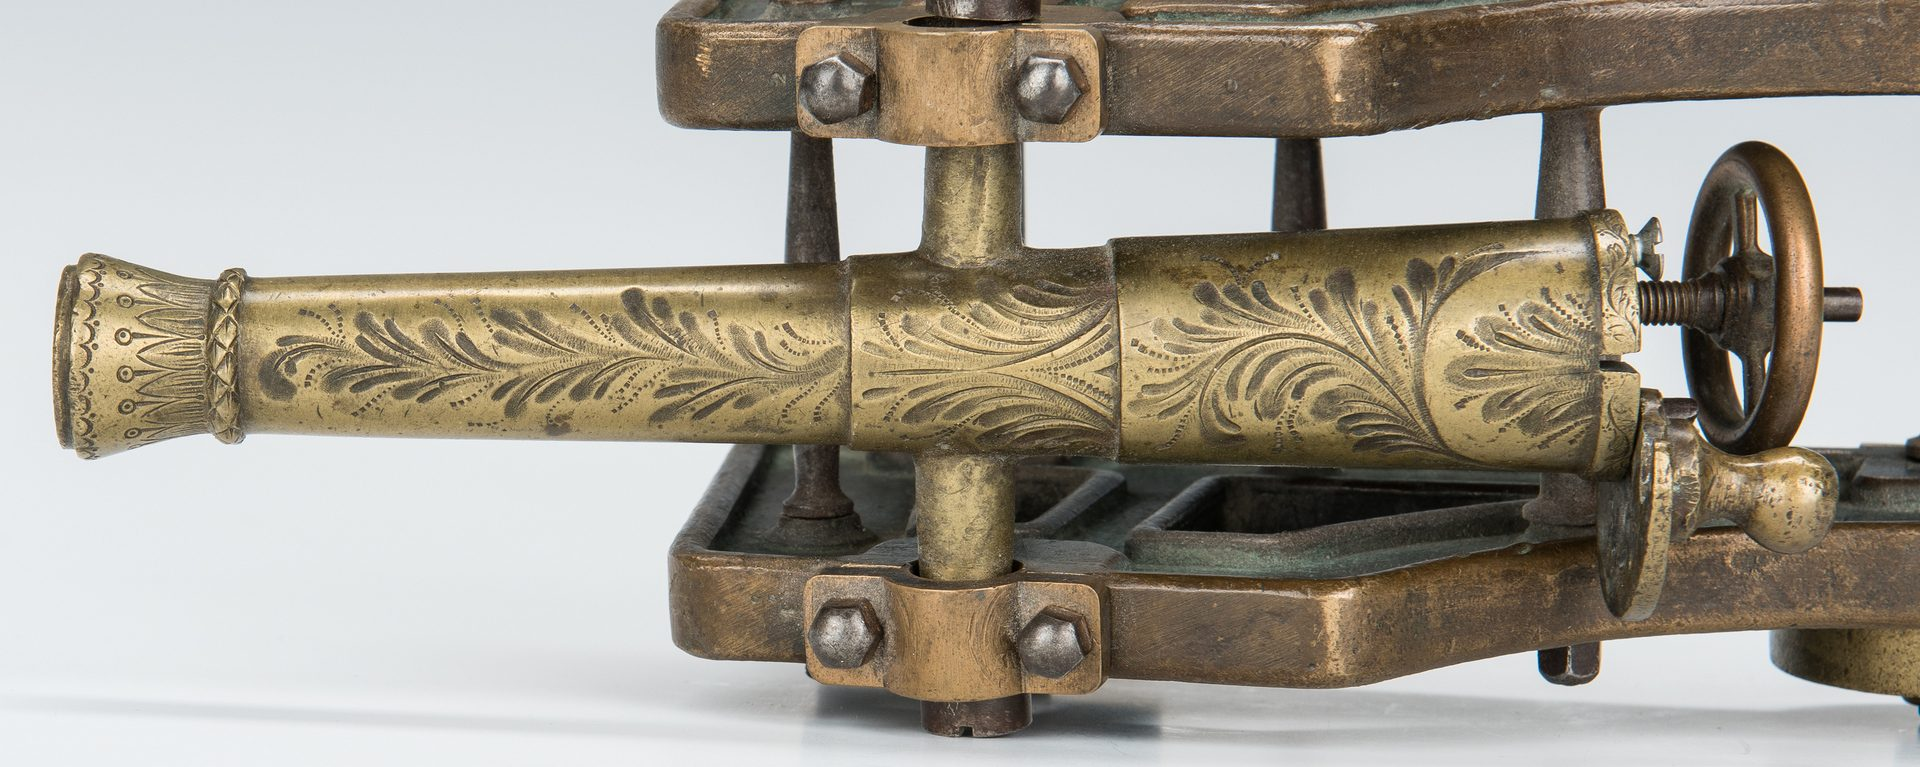 Lot 107: Grenfell Type Rug, Document Box, Inkwell, Miniature Bronze Cannon